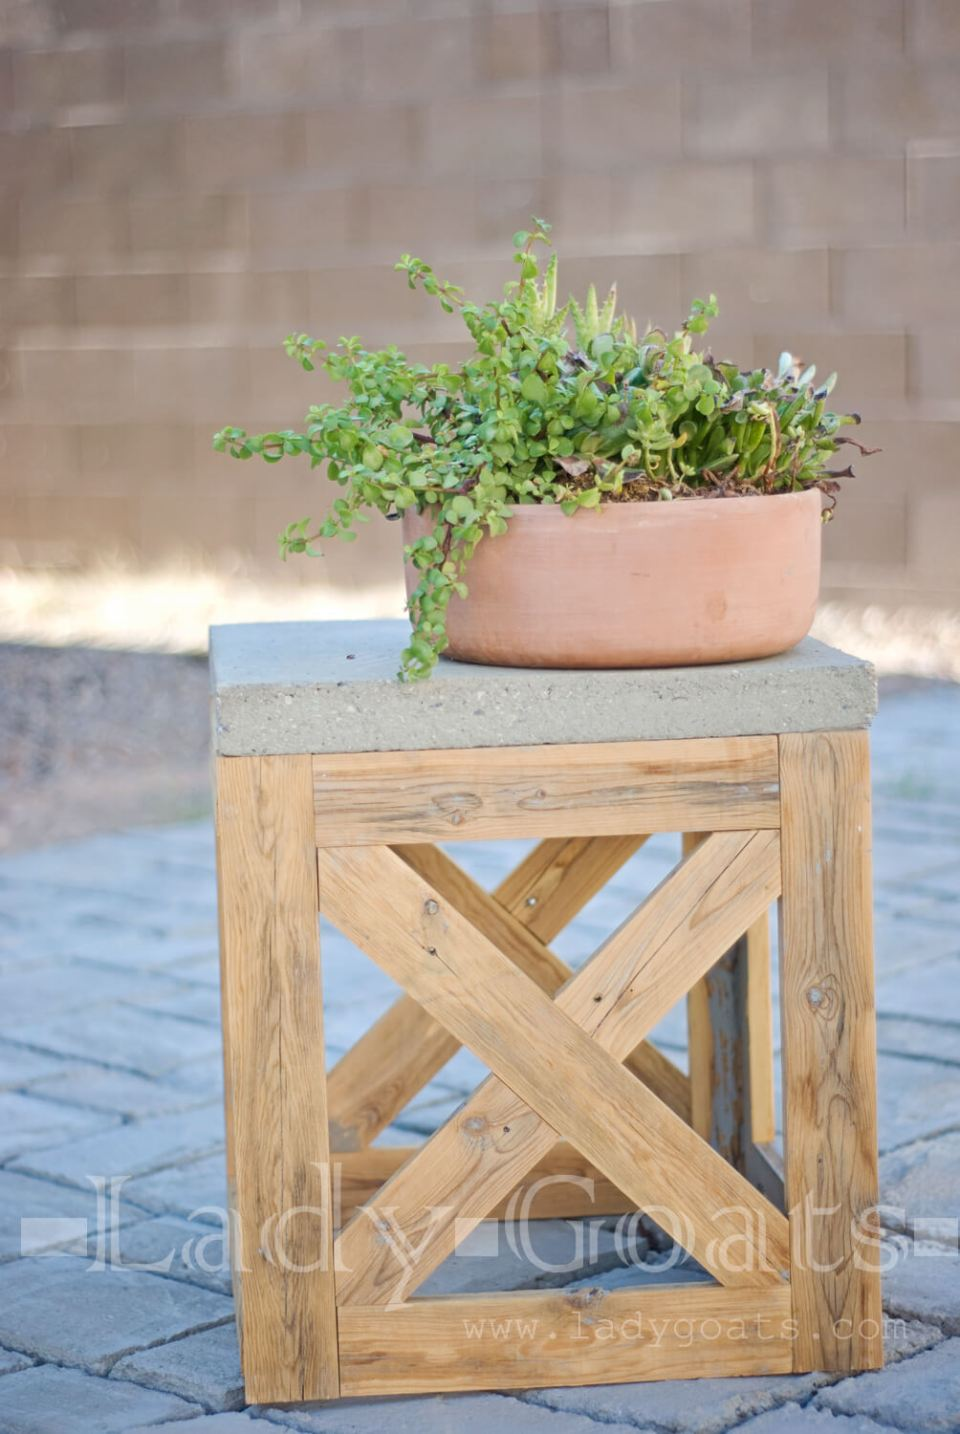 DIY Outdoor Furniture Projects: Reclaimed Wooden X-Stool and Side Table